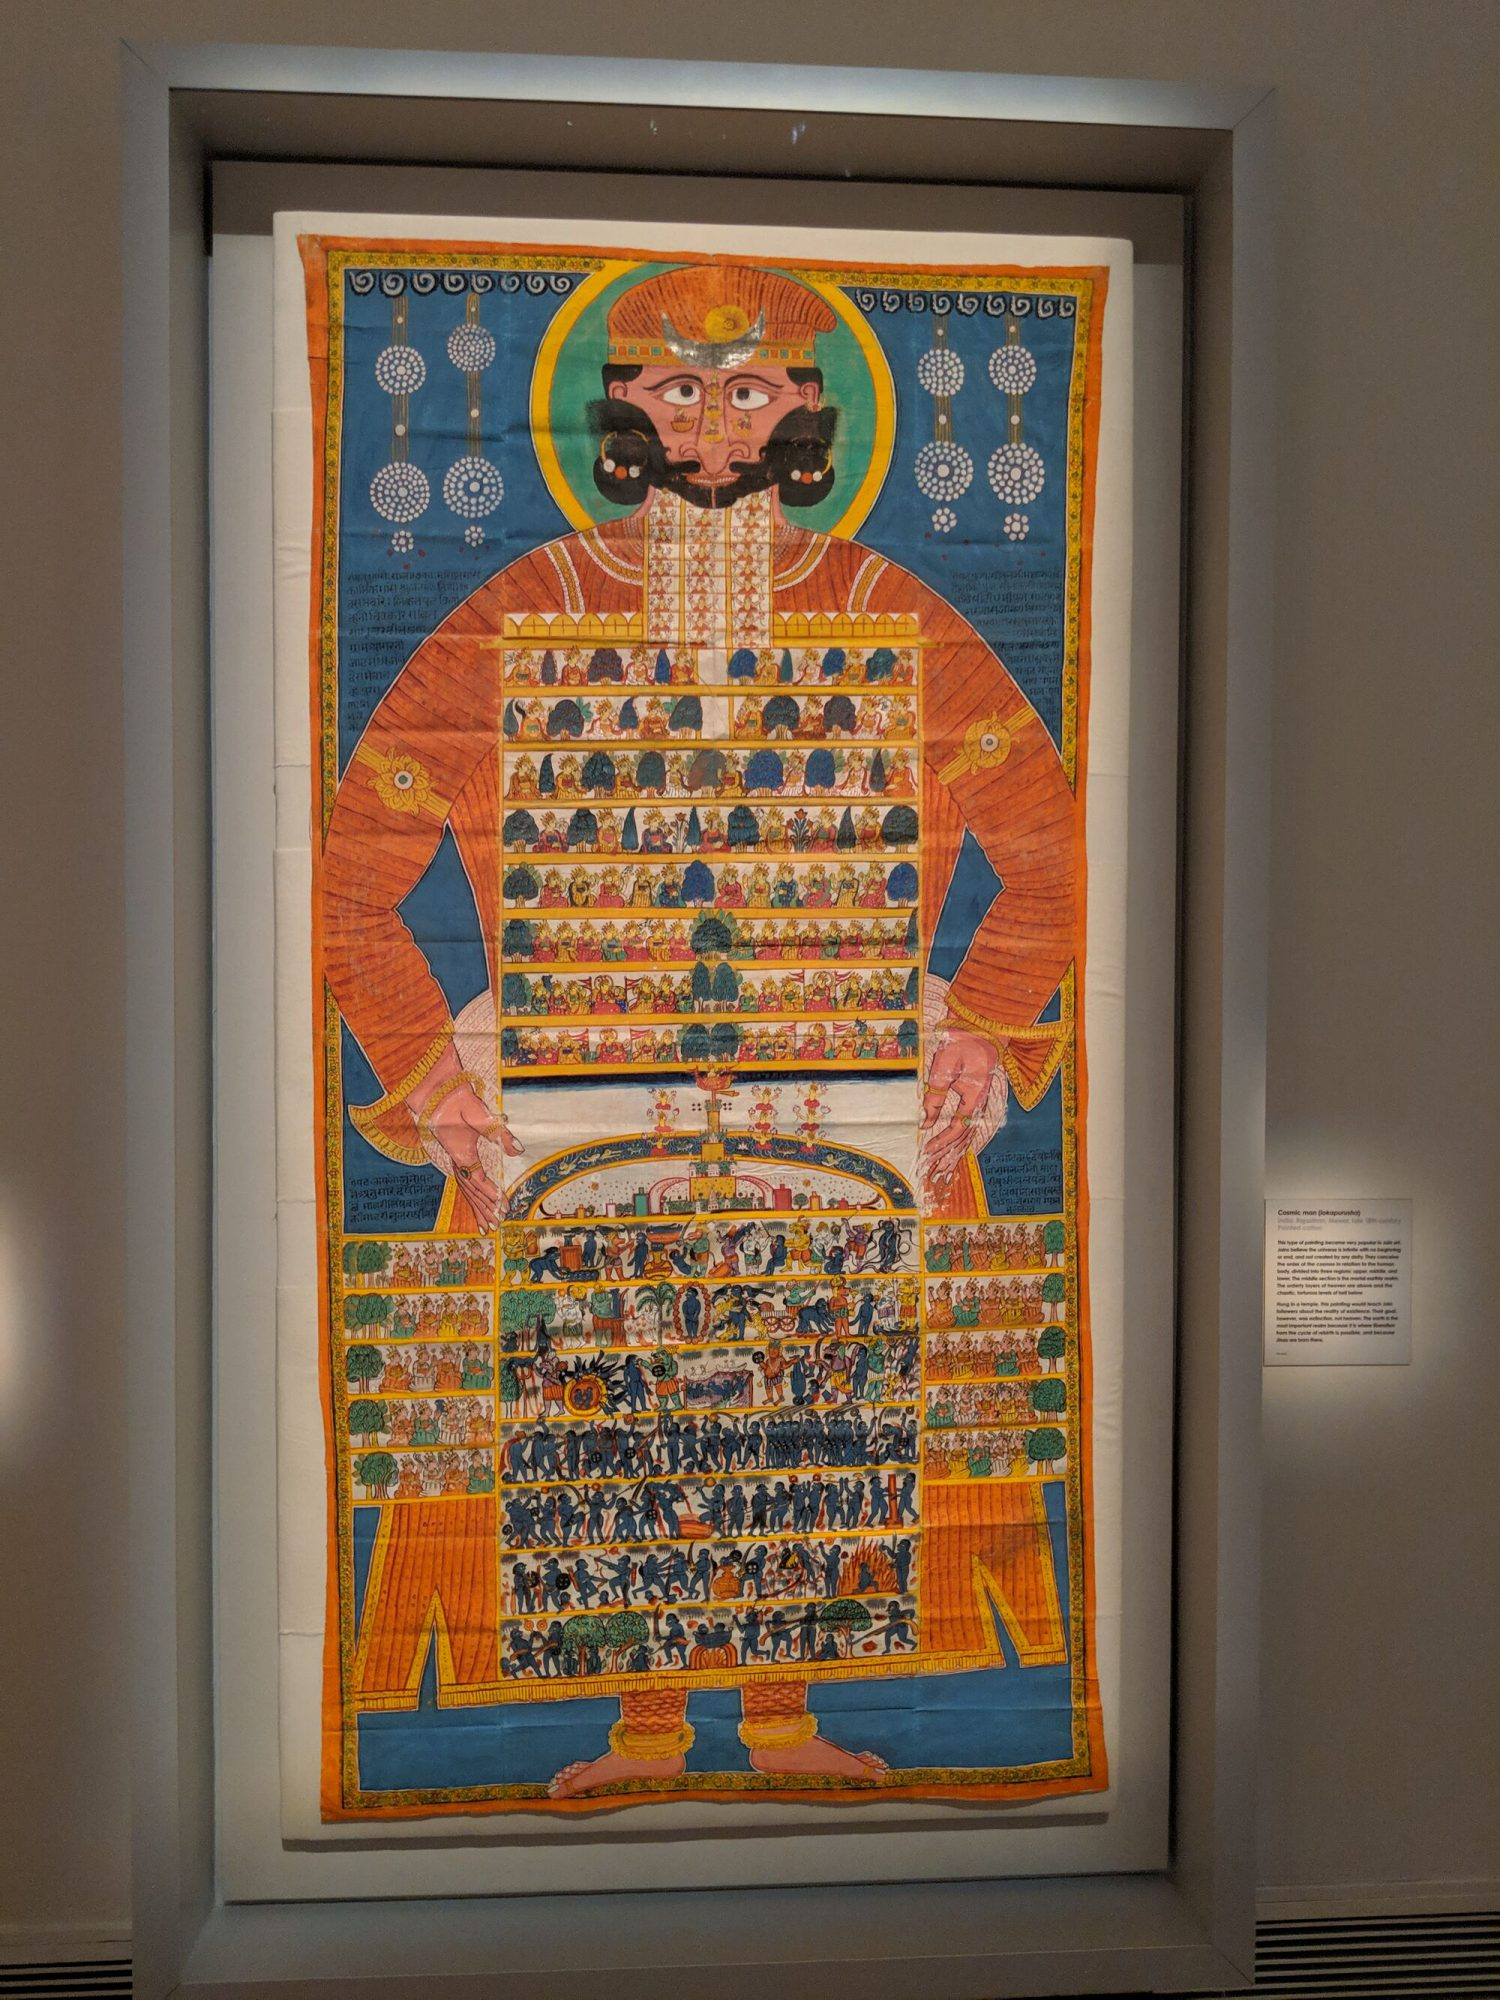 Cosmic Man (lokapurusha), Rajasthan, 18th Century. This type of painting became very popular in Jain art. Jains believe the universe is infinite with no beginning or end, and not created by any deity. They conceive the order of the cosmos in relation to the human body, divided into 3 regions: upper, middle, and, lower.